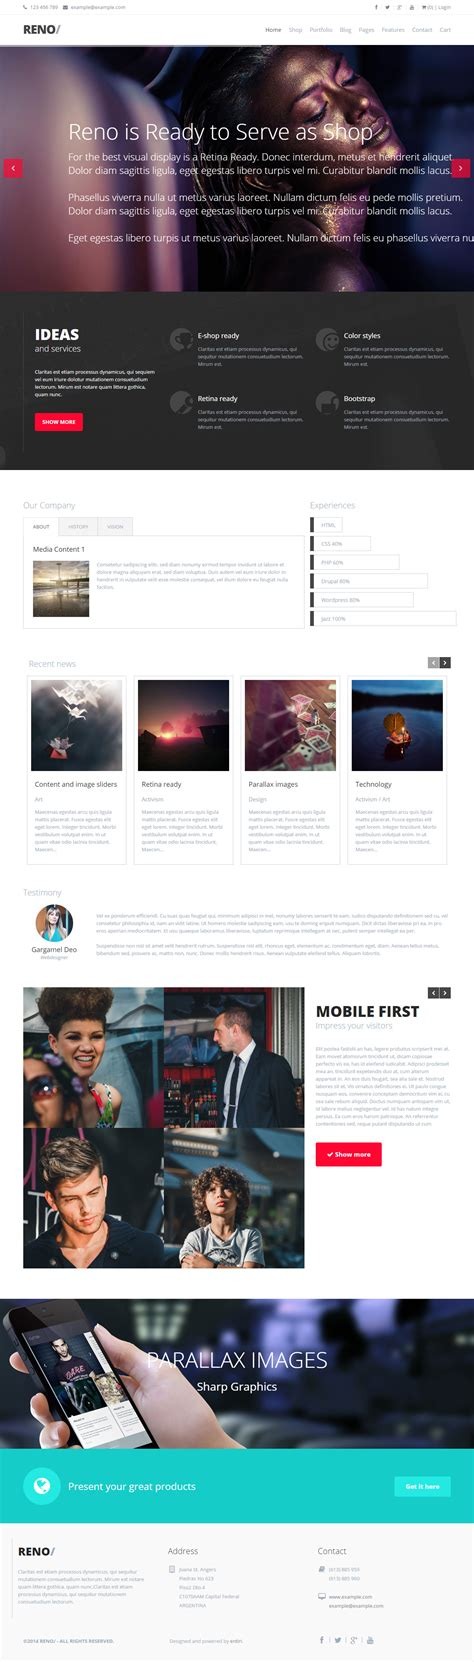 drupal themes list 5 best responsive parallax scrolling drupal themes 2015